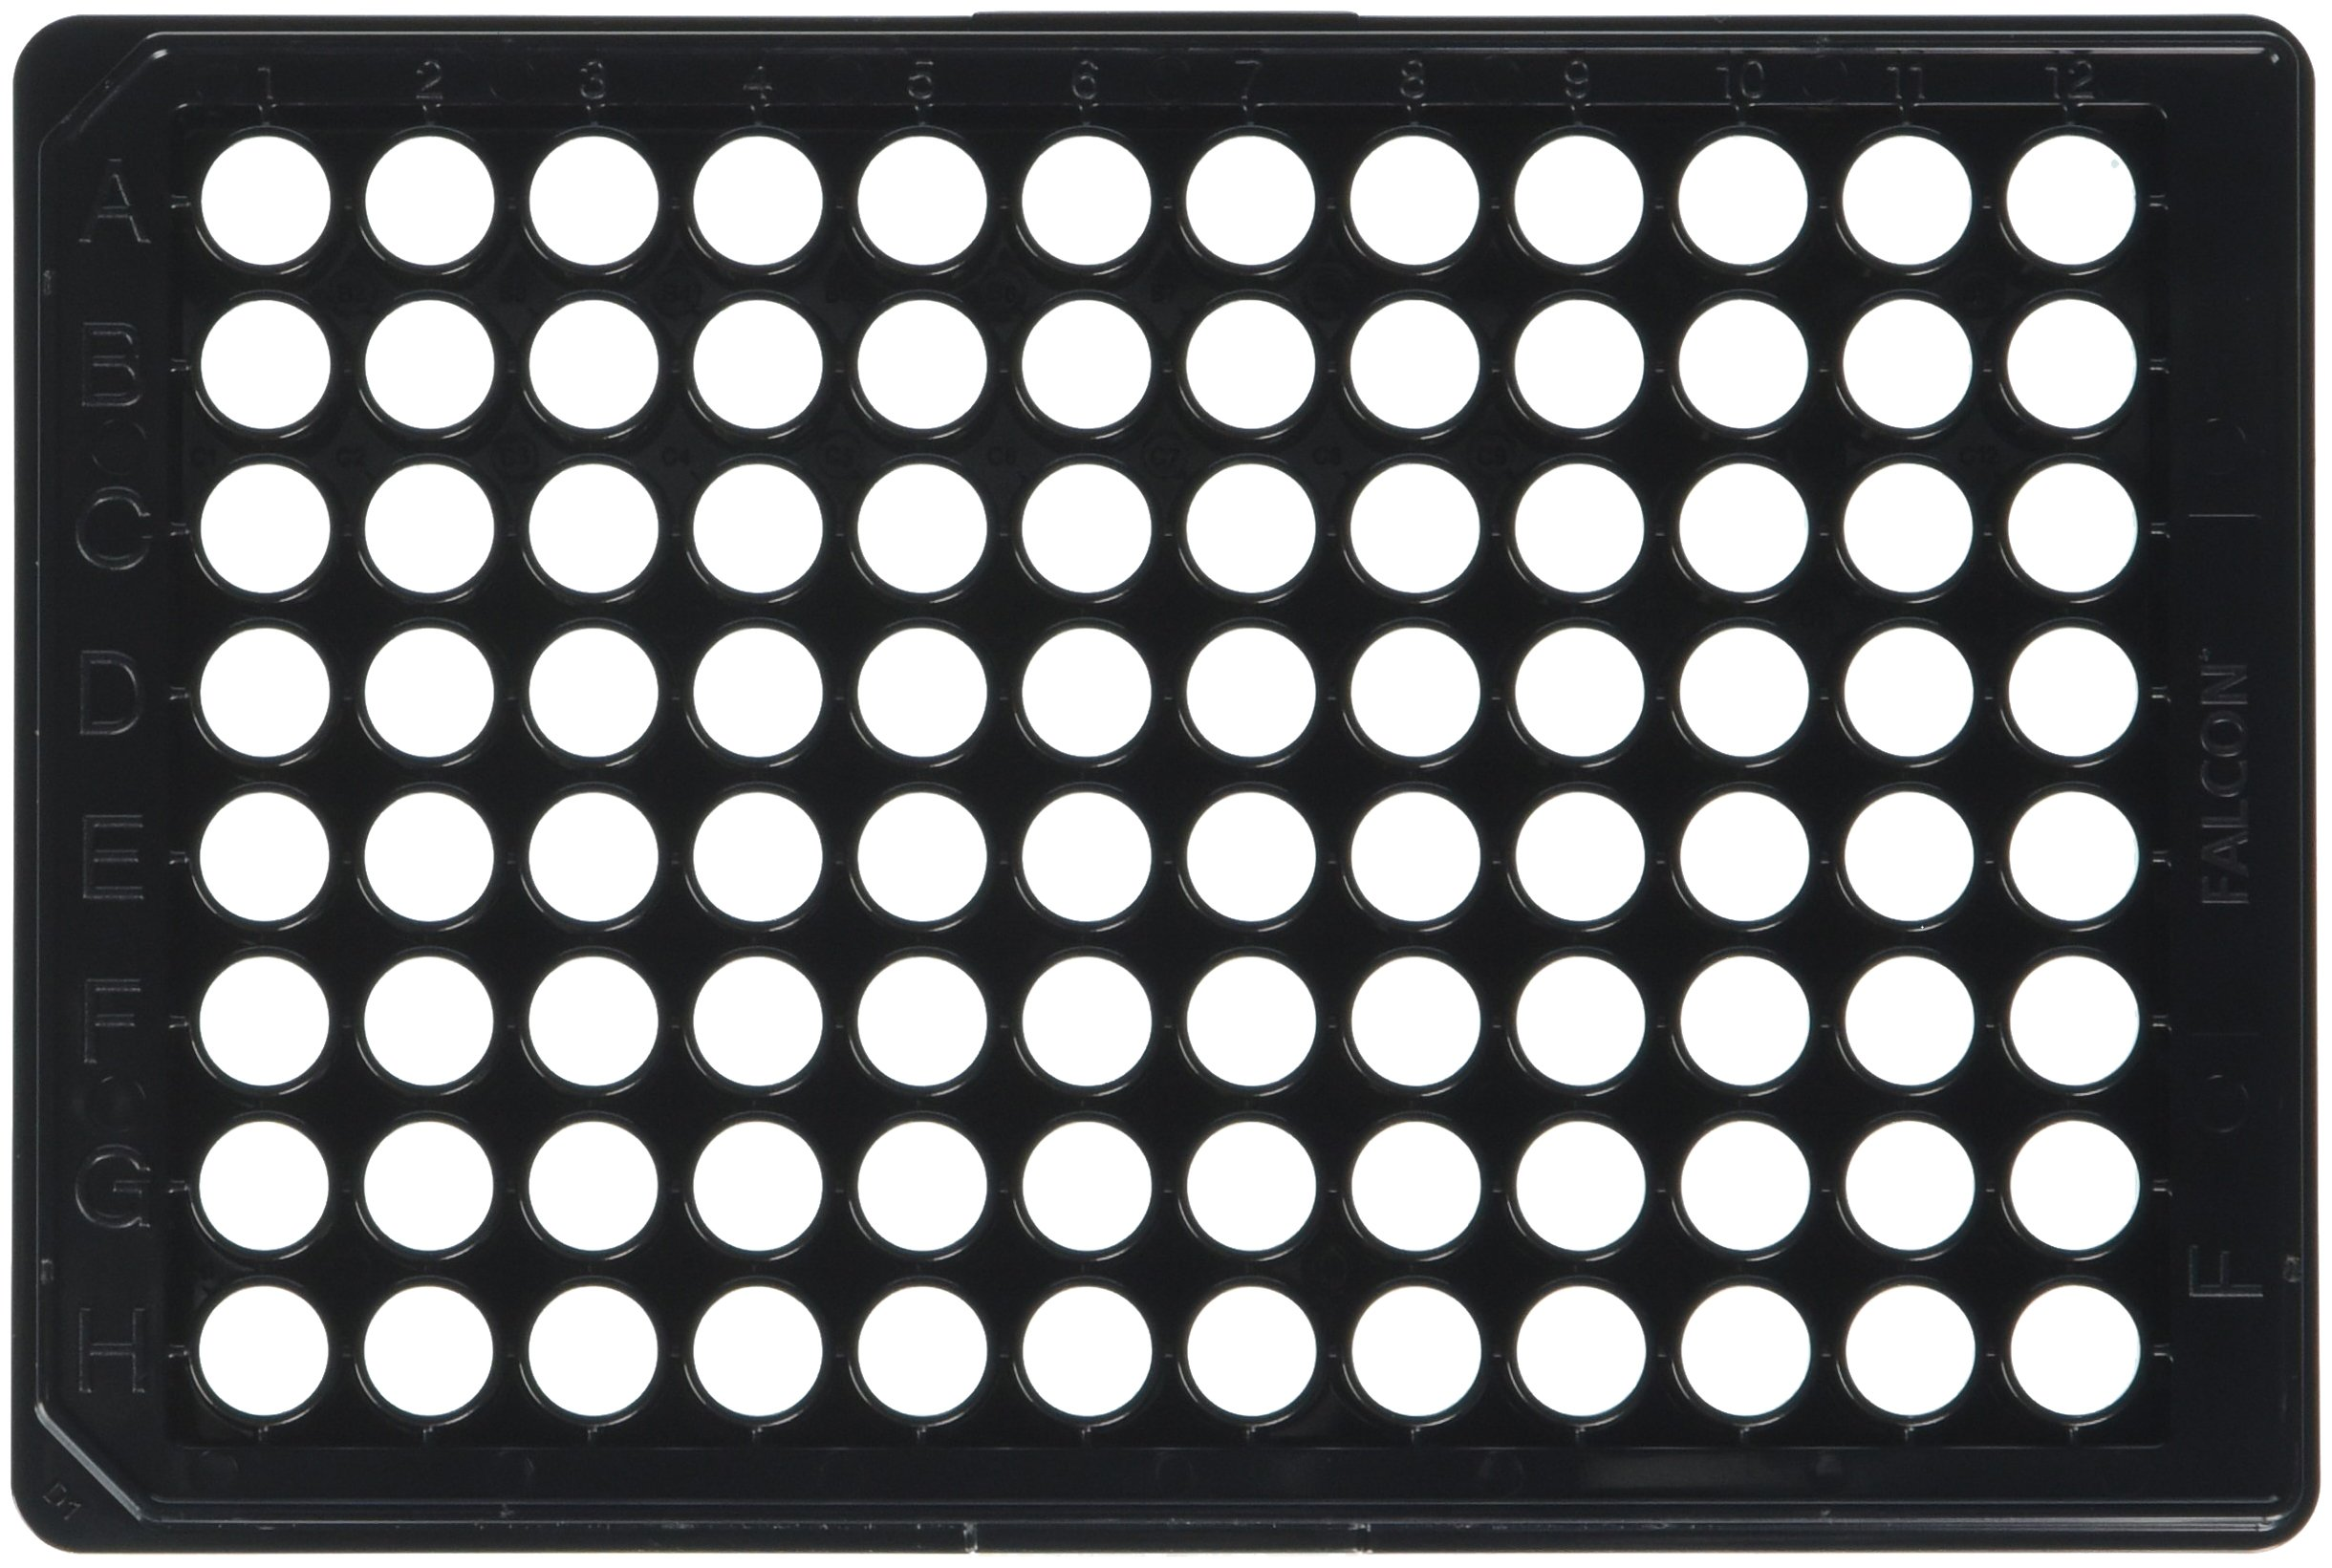 BD 353219 Falcon Black/Clear Sterile 96 Well Imaging Plate with Lid (Case of 32) by BD